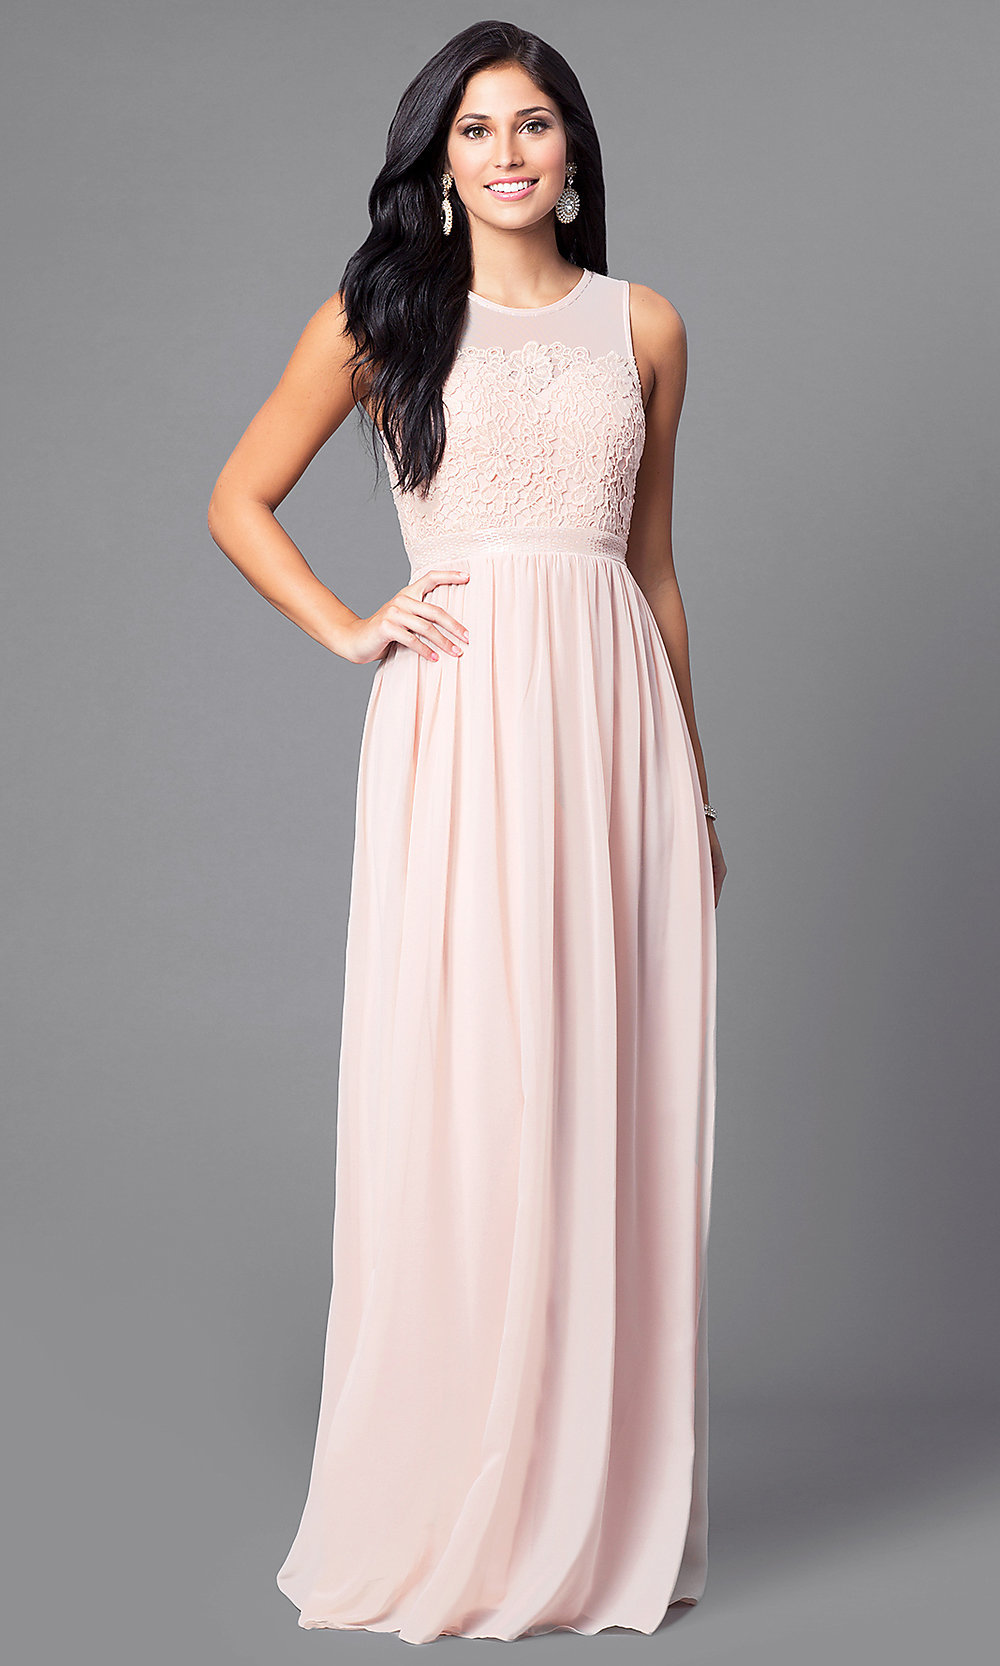 Shop prom dresses, formal gowns, cocktail and eveningwear at orimono.ga We are one of the best prom dress websites offering short and long prom, mother of the bride dresses and mother of the groom dresses, homecoming, bridesmaids and graduation dresses.